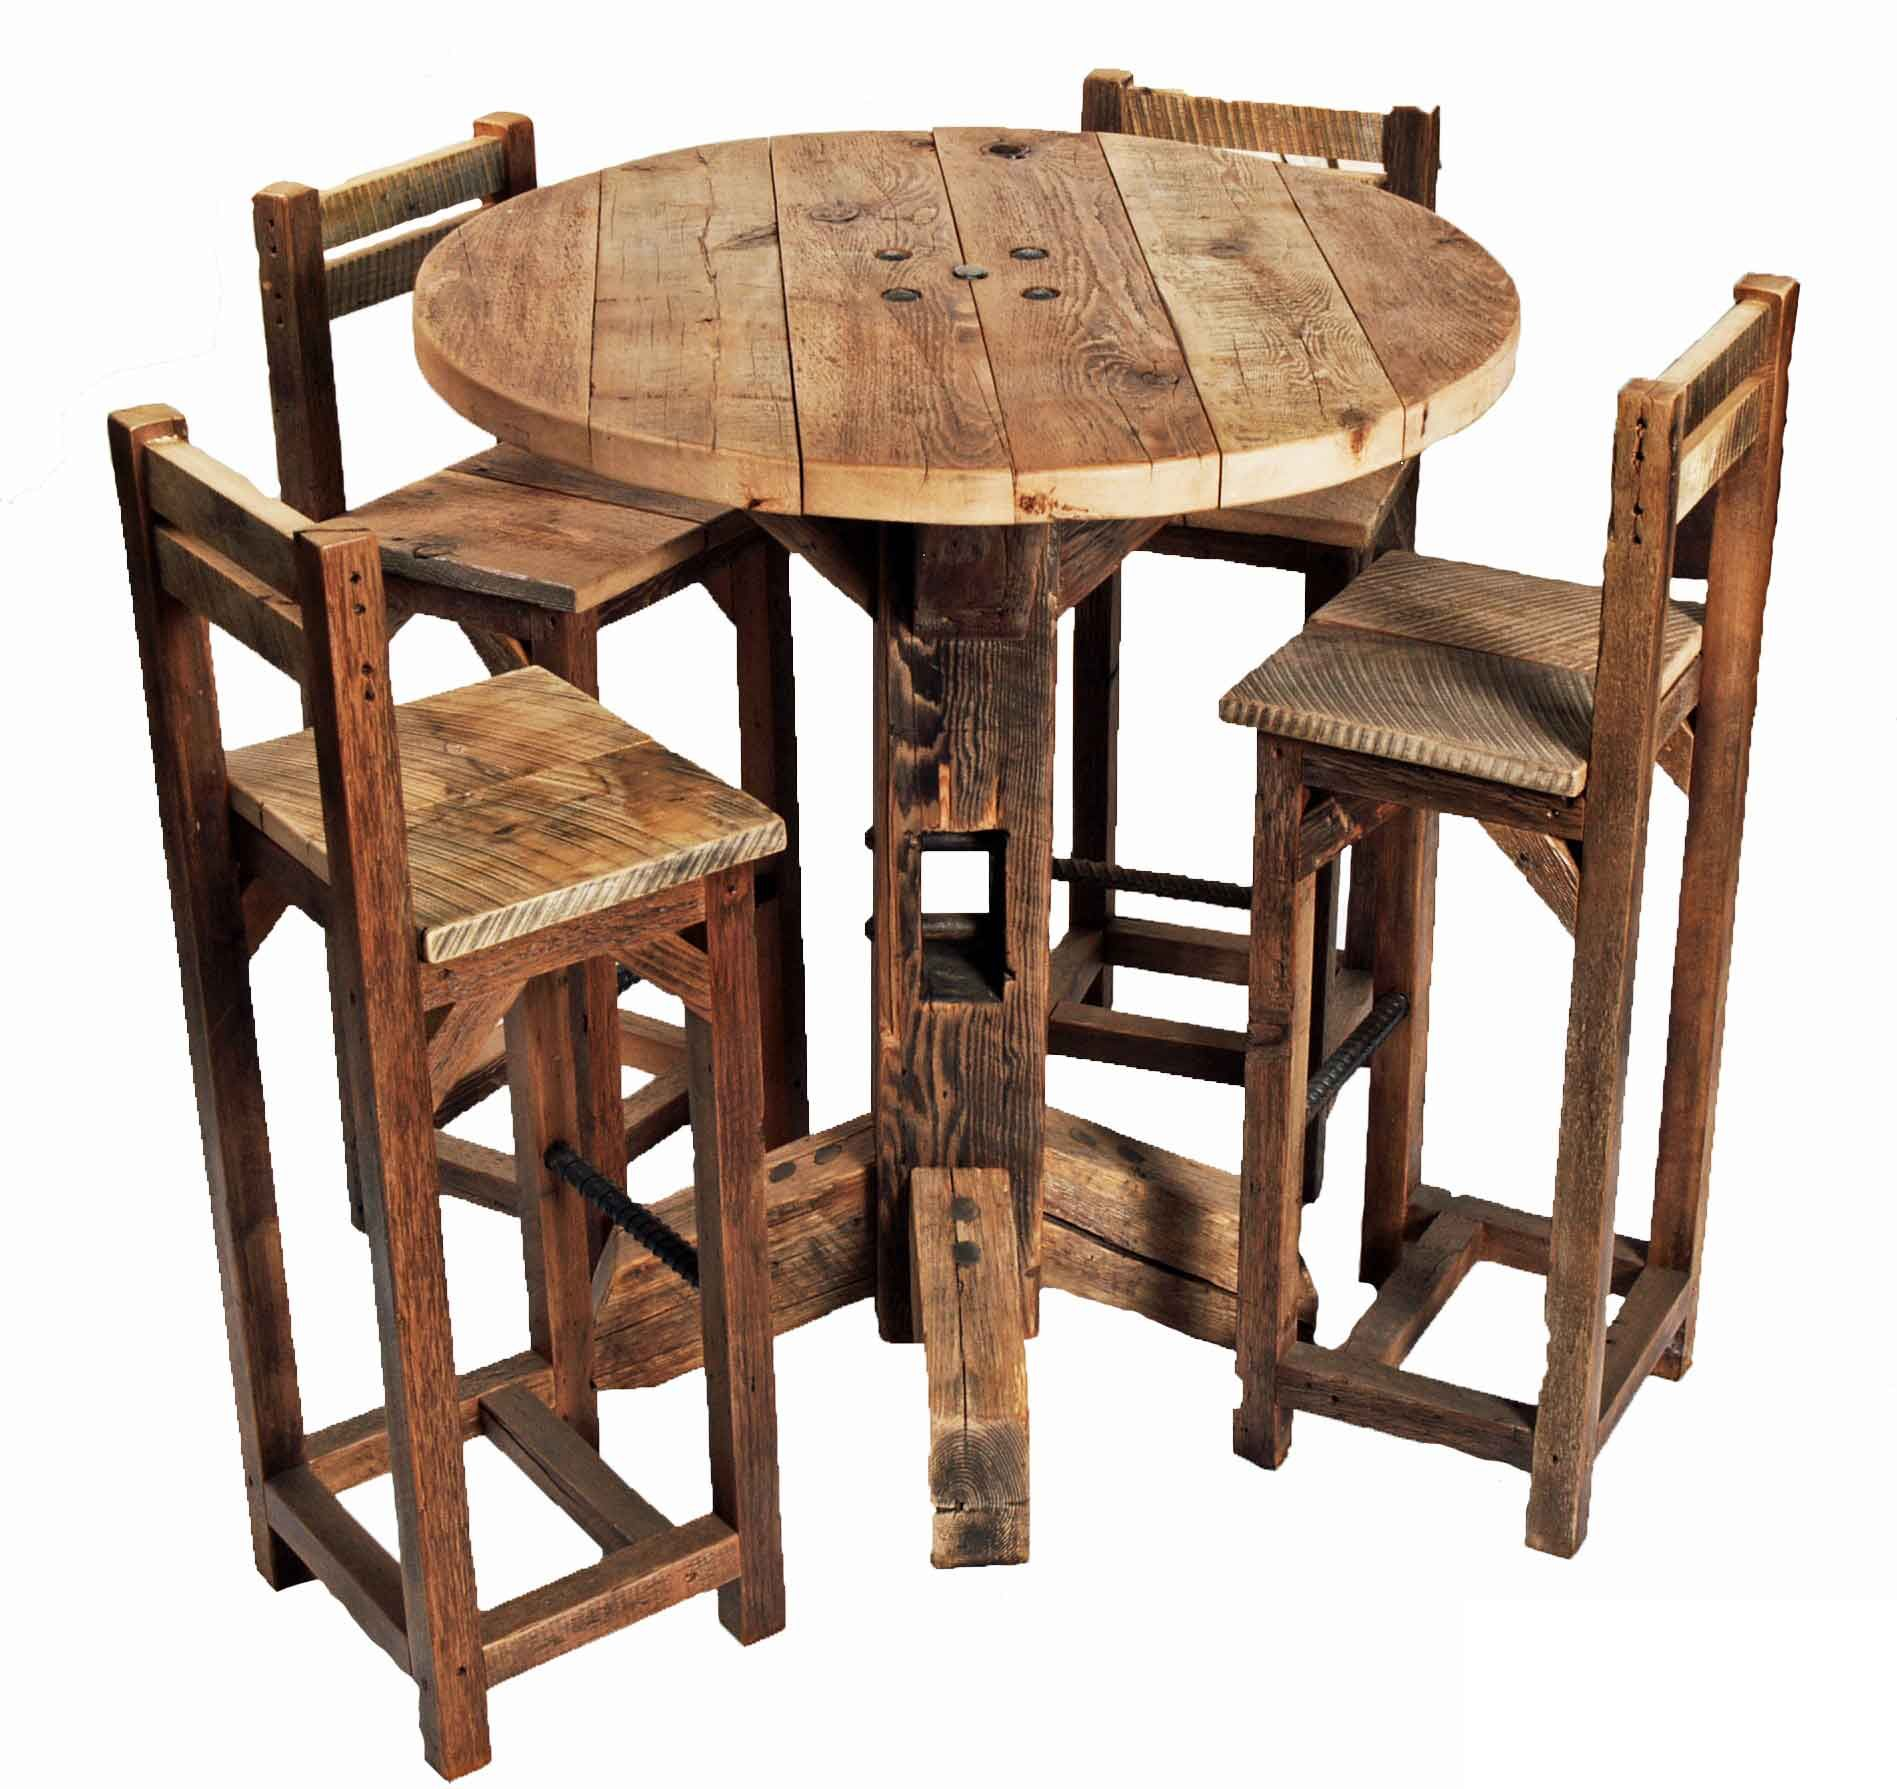 Furniture old rustic small high round top kitchen table for High table and chairs dining set